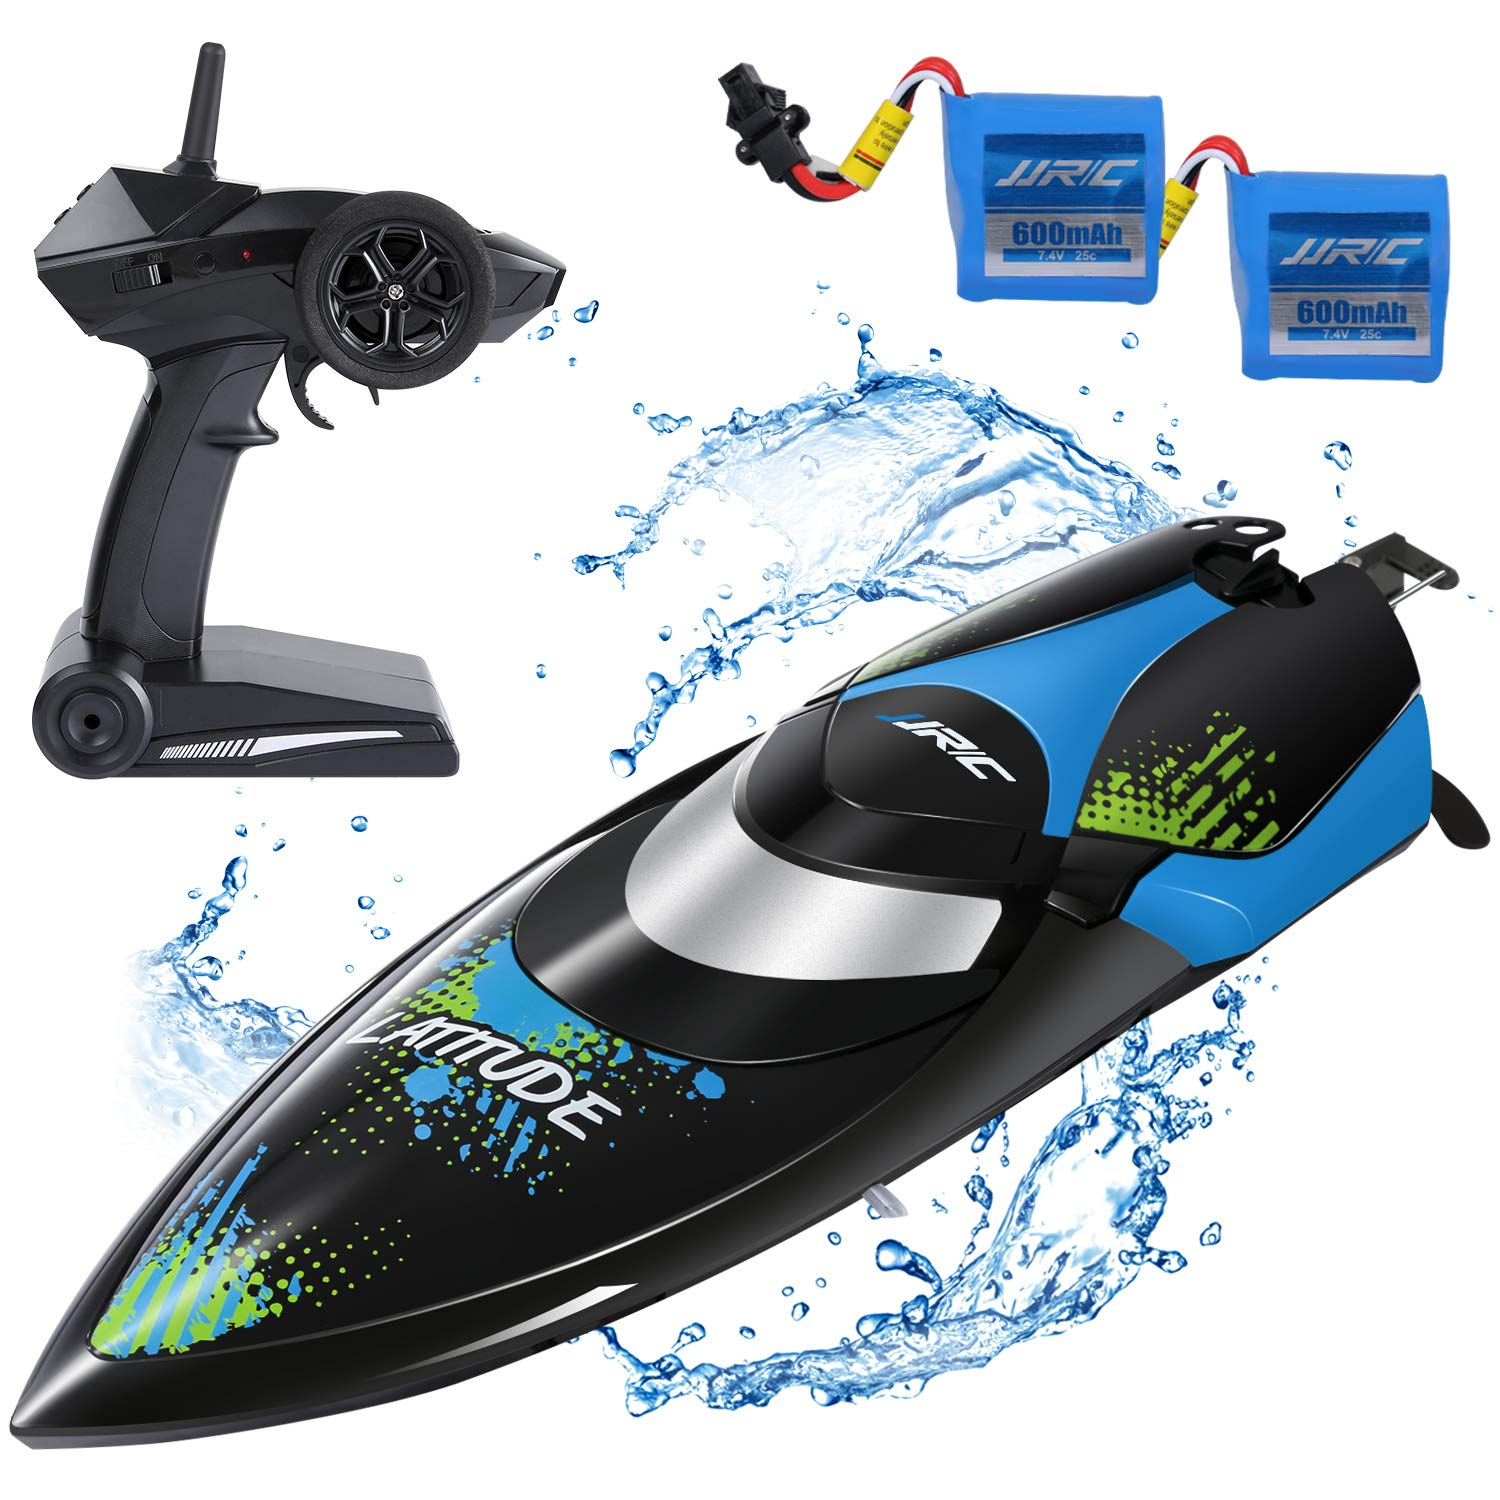 SGILE RC Race Boat,25 KM/H Remote Control Boat for Kid Adult,2.4 GHz 180° Flip High-Speed Boat,Black